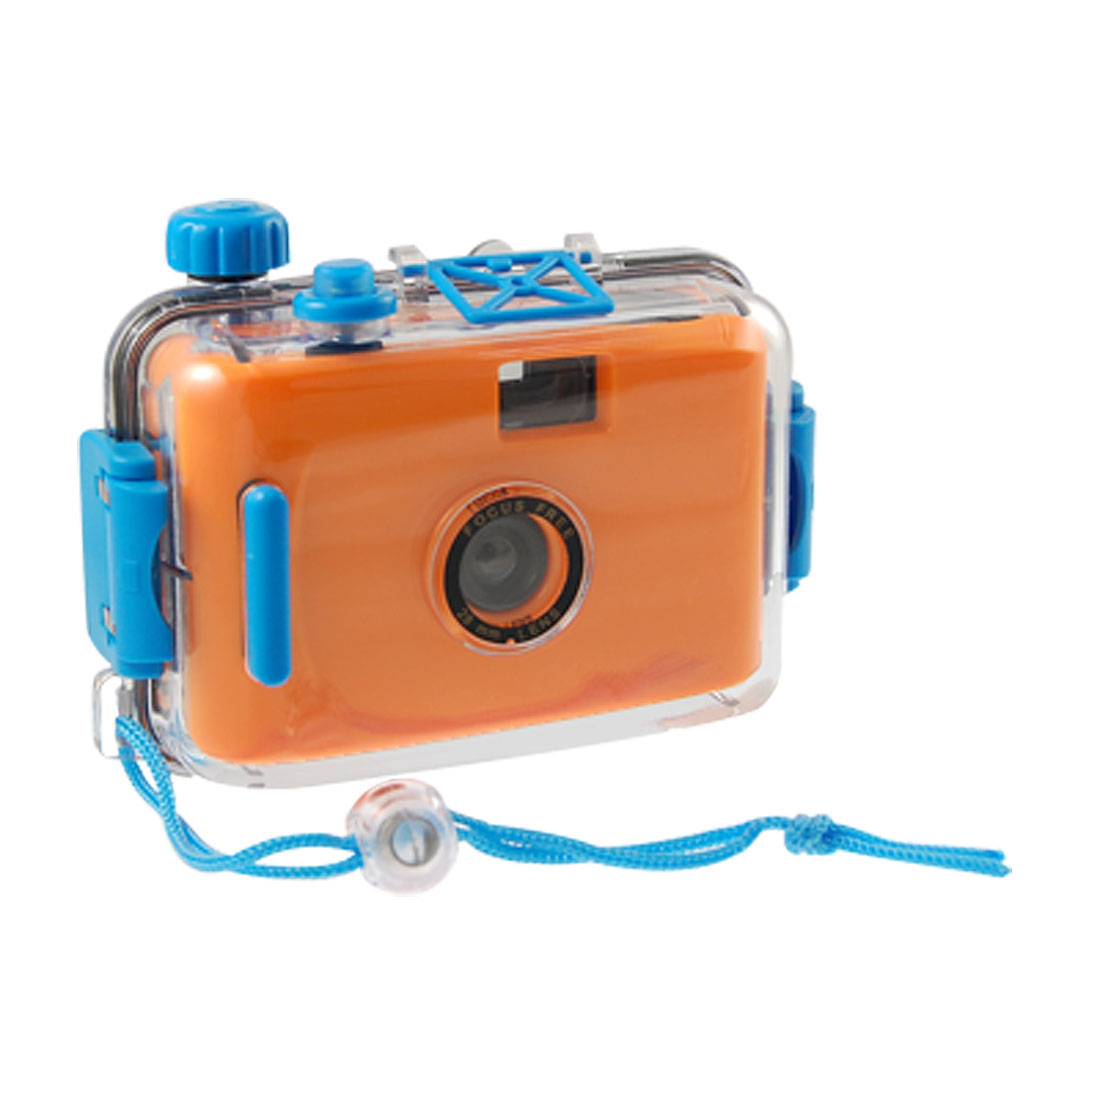 Kids Orange Black Plastic Waterproof Casing Fake Camera Toy